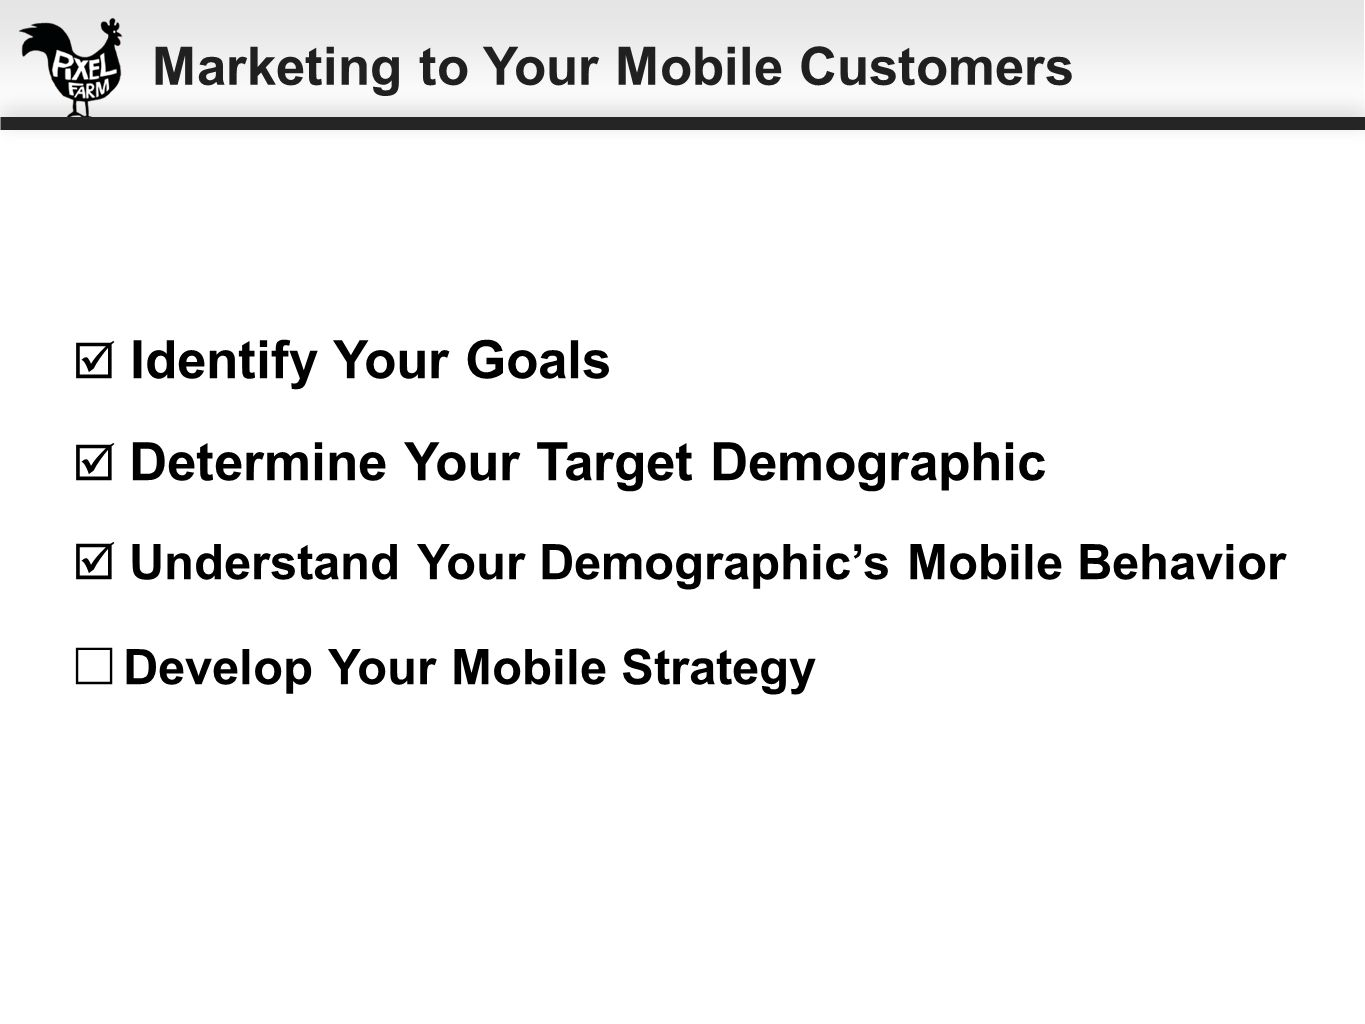 ☐ Develop Your Mobile Strategy